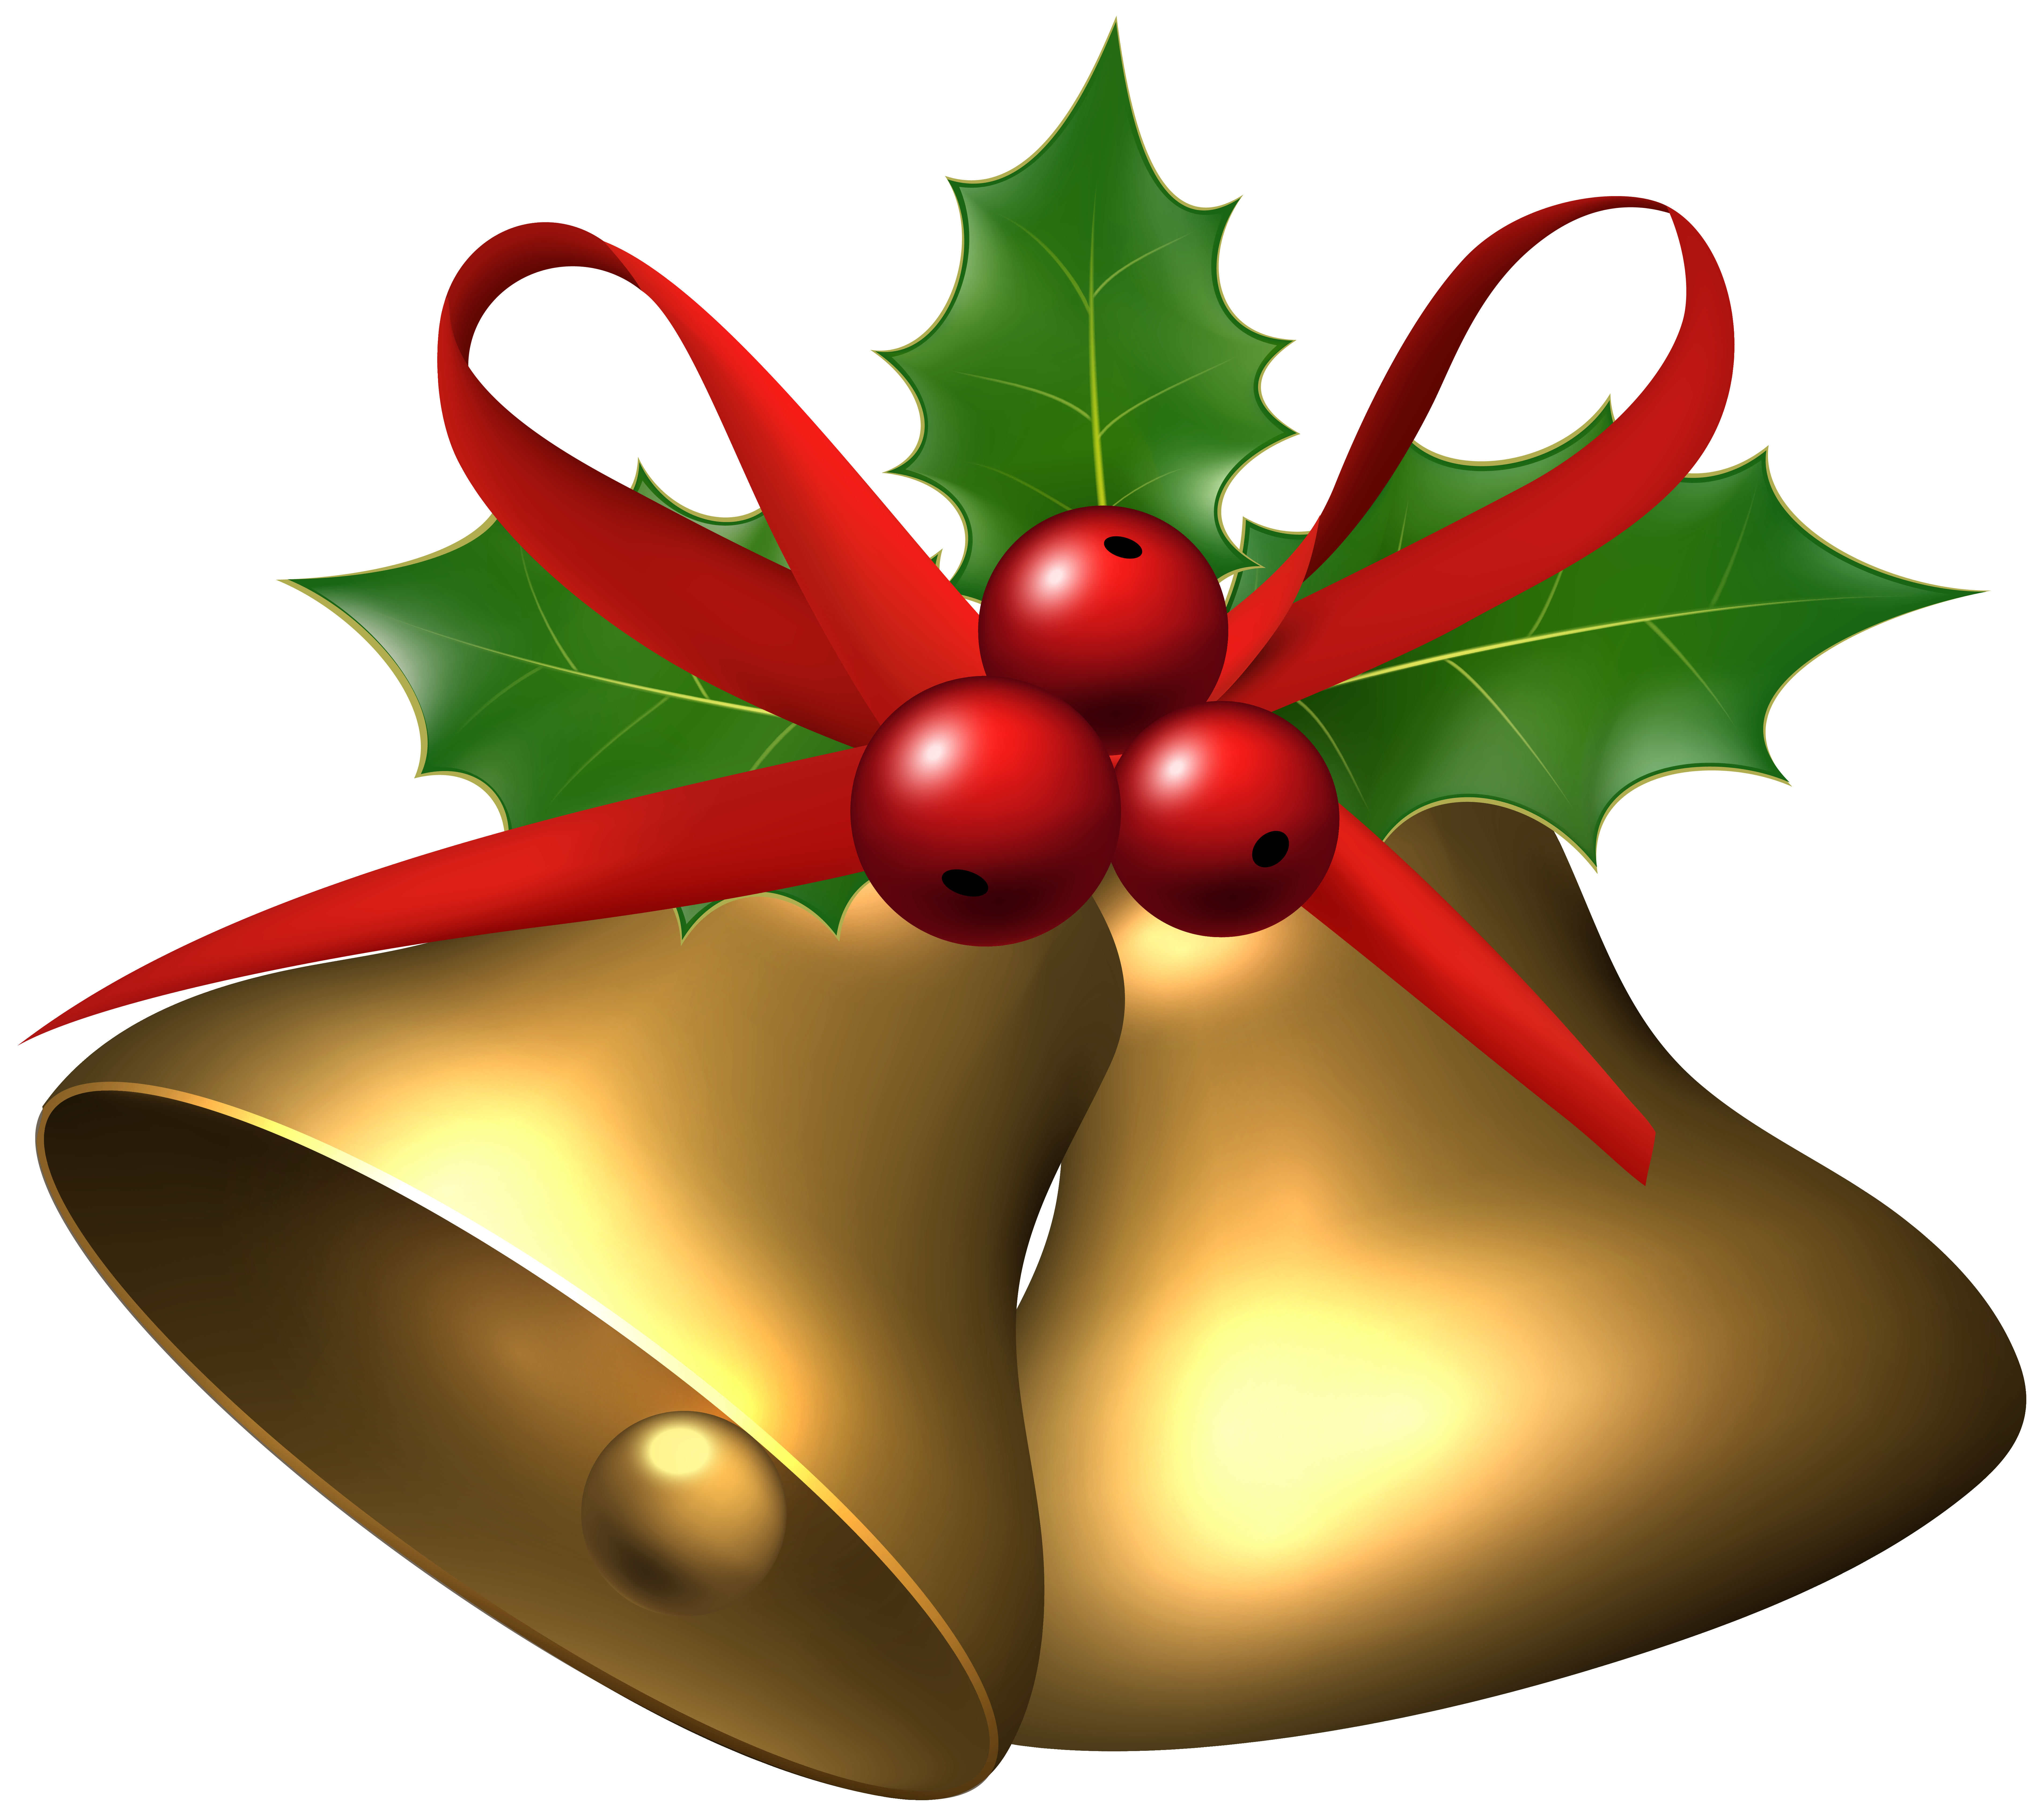 png freeuse download Mistletoe clipart merry christmas. Luxury holly pictures a.